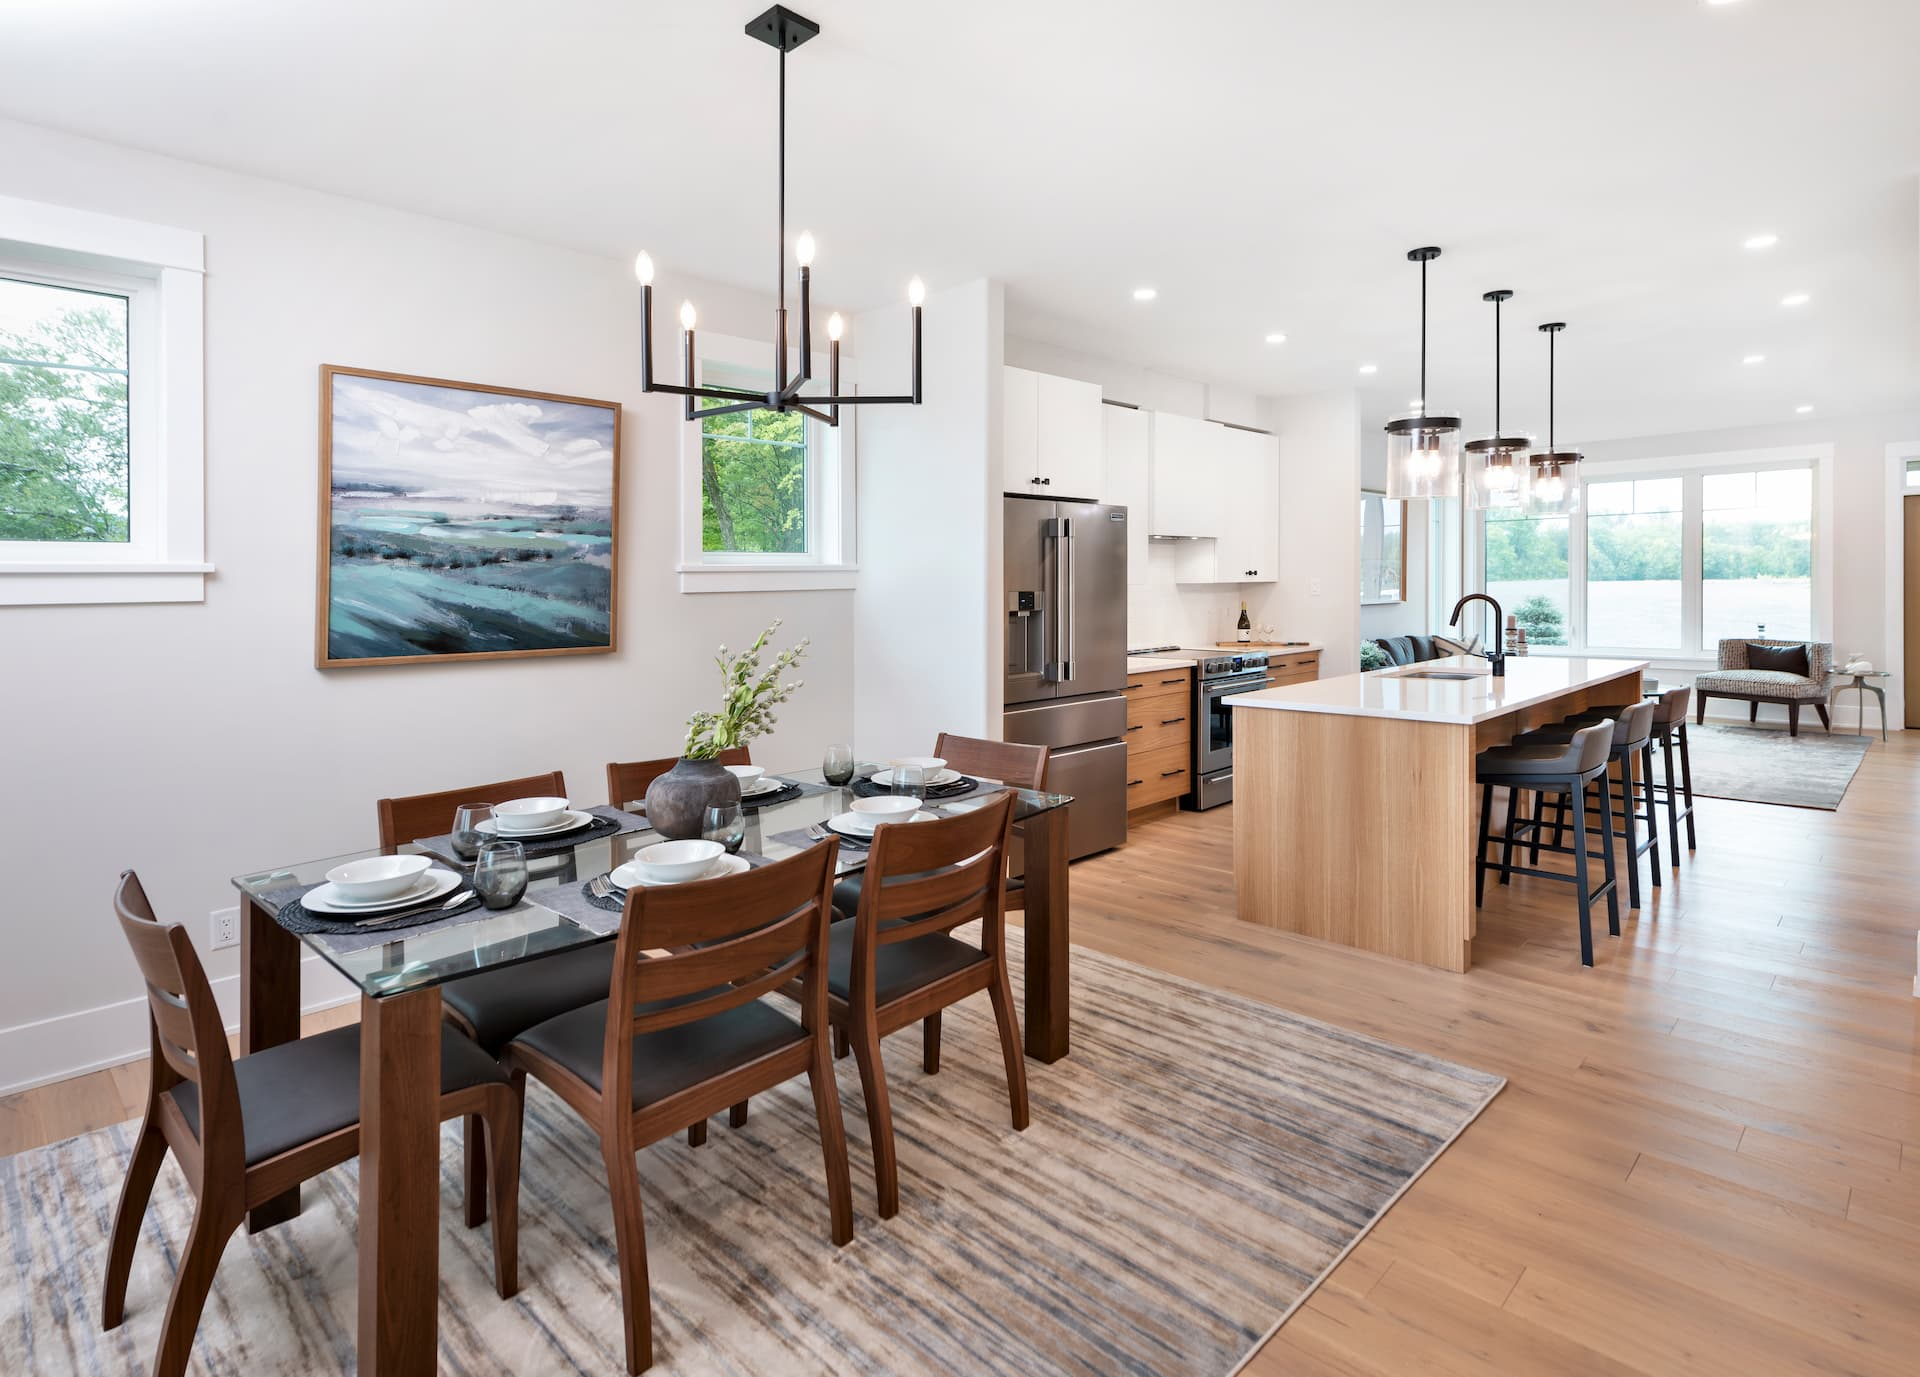 A model kitchen and dining room at Watercolour Westport.